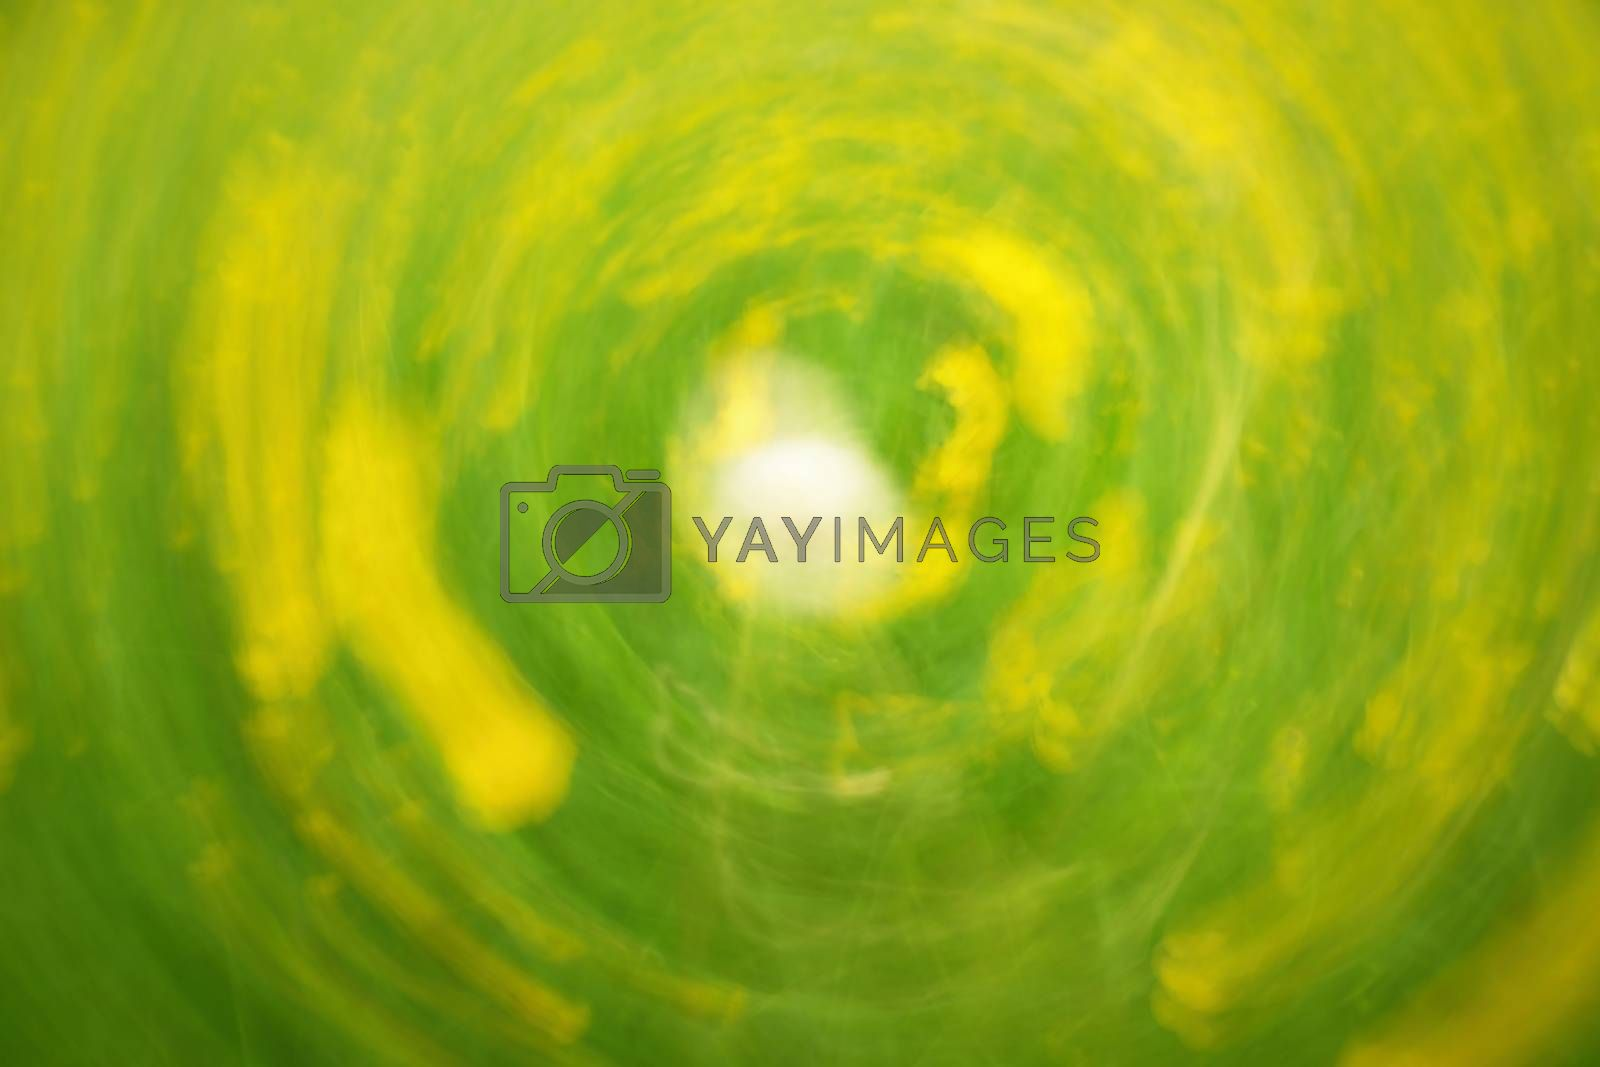 Defocused flowers and grass in circle background. Blurred and de focused yellow blossom and green grass stalks. Hypnotic blurry effect.